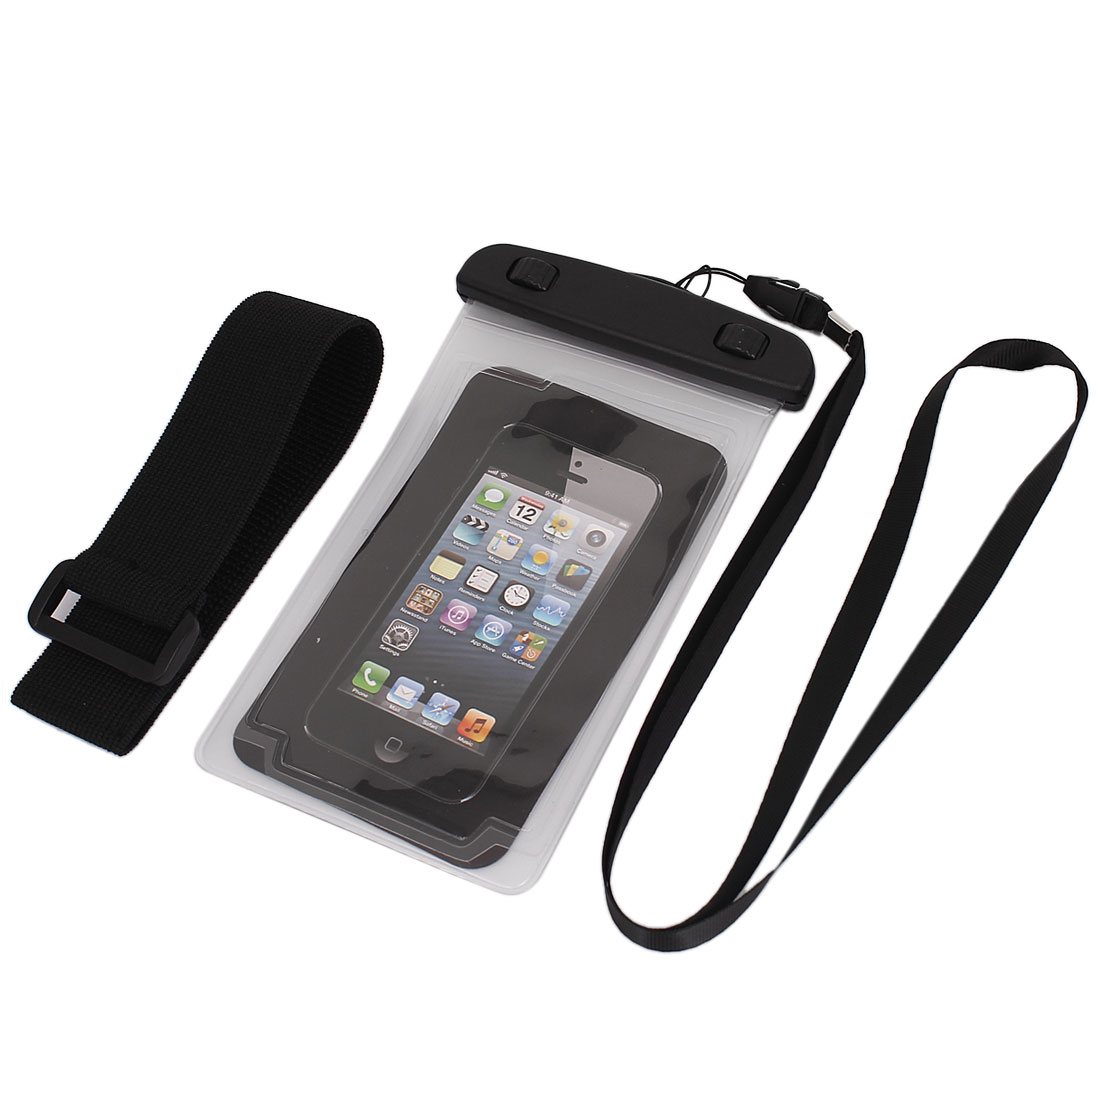 "Underwater Waterproof Case Dry Bag Cover Pouch Holder Clear for 4.7"" Cell Phone"